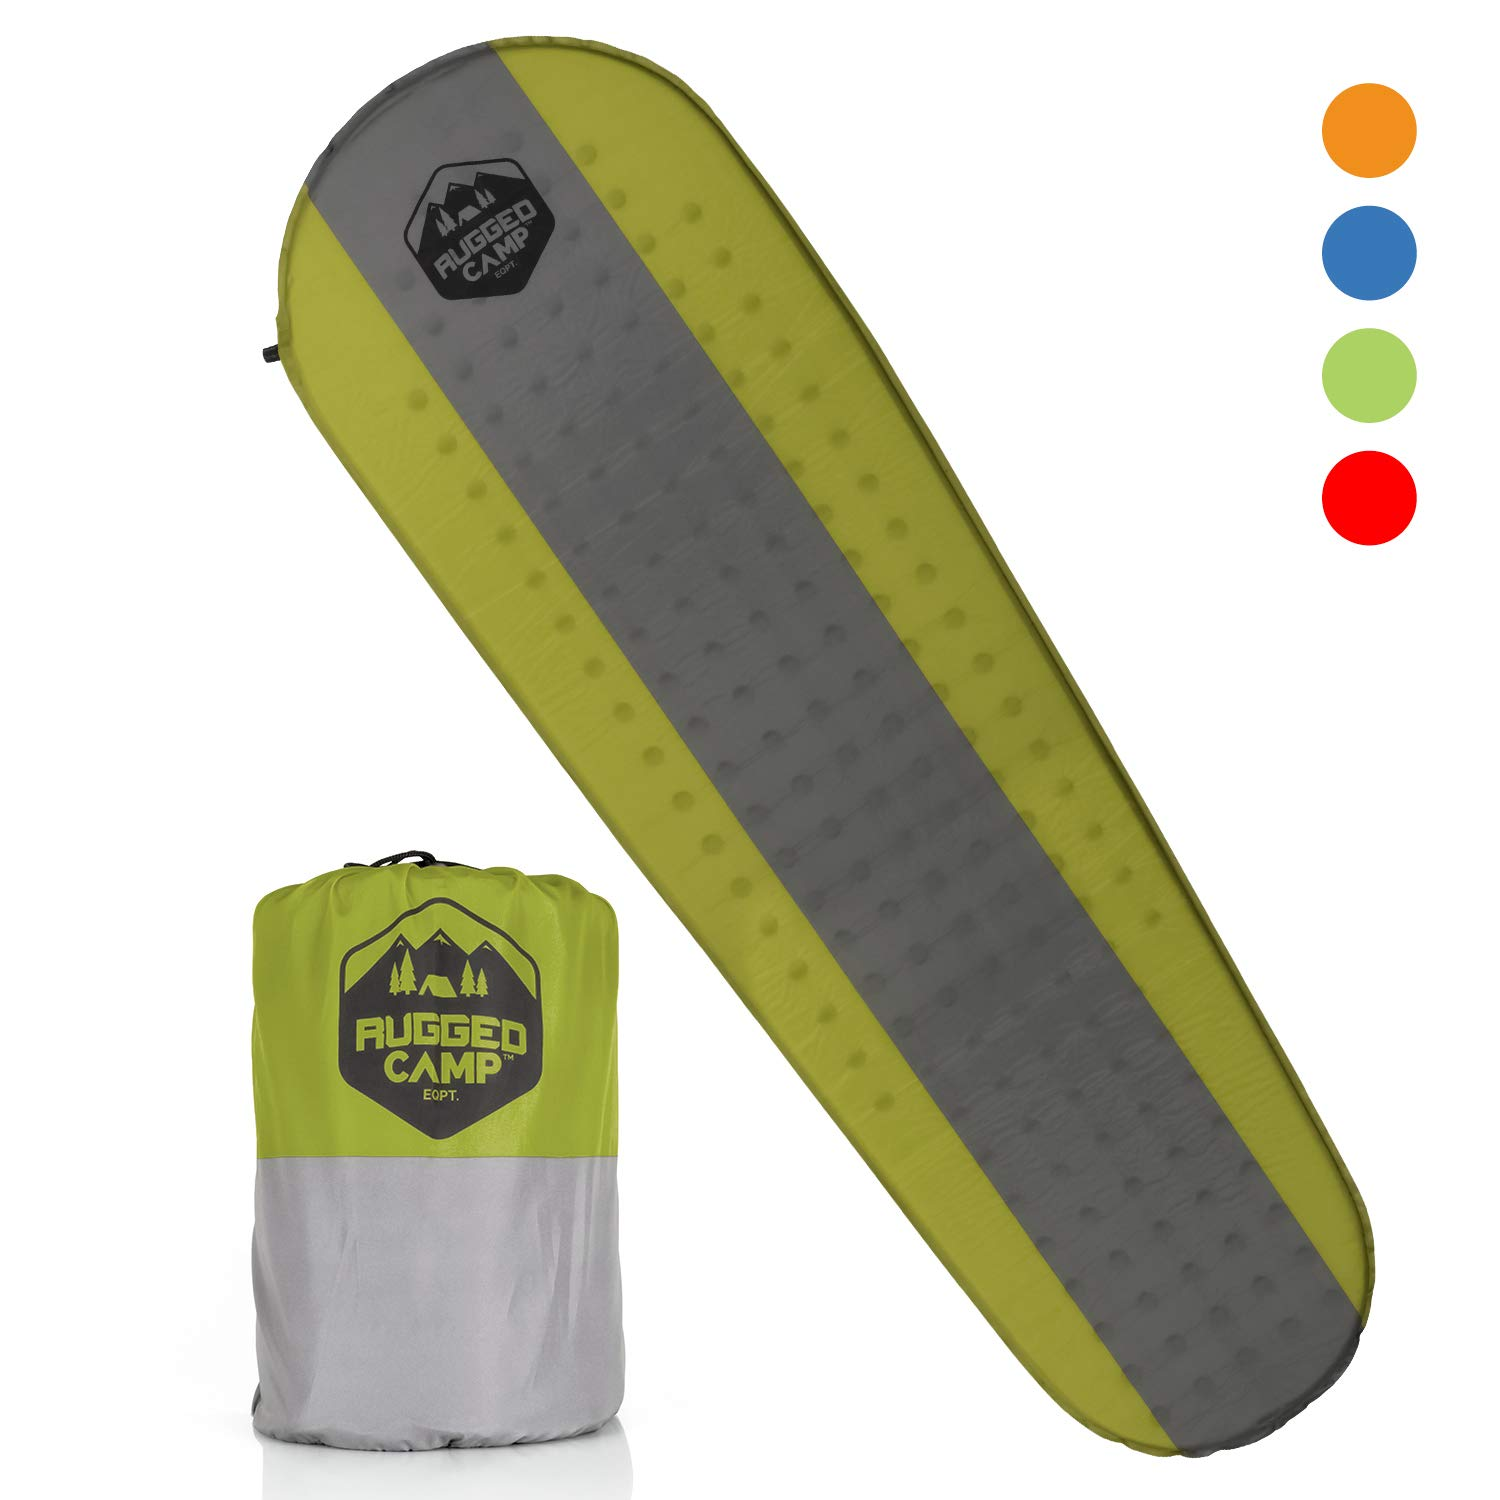 Rugged Camp Self Inflating Sleeping Pad - Sleep Comfortably in The Outdoors - Camping Gear and Accessories for Hiking, Backpacking, Travel - Lightweight and Compact Camping Mat (Green) by Rugged Camp